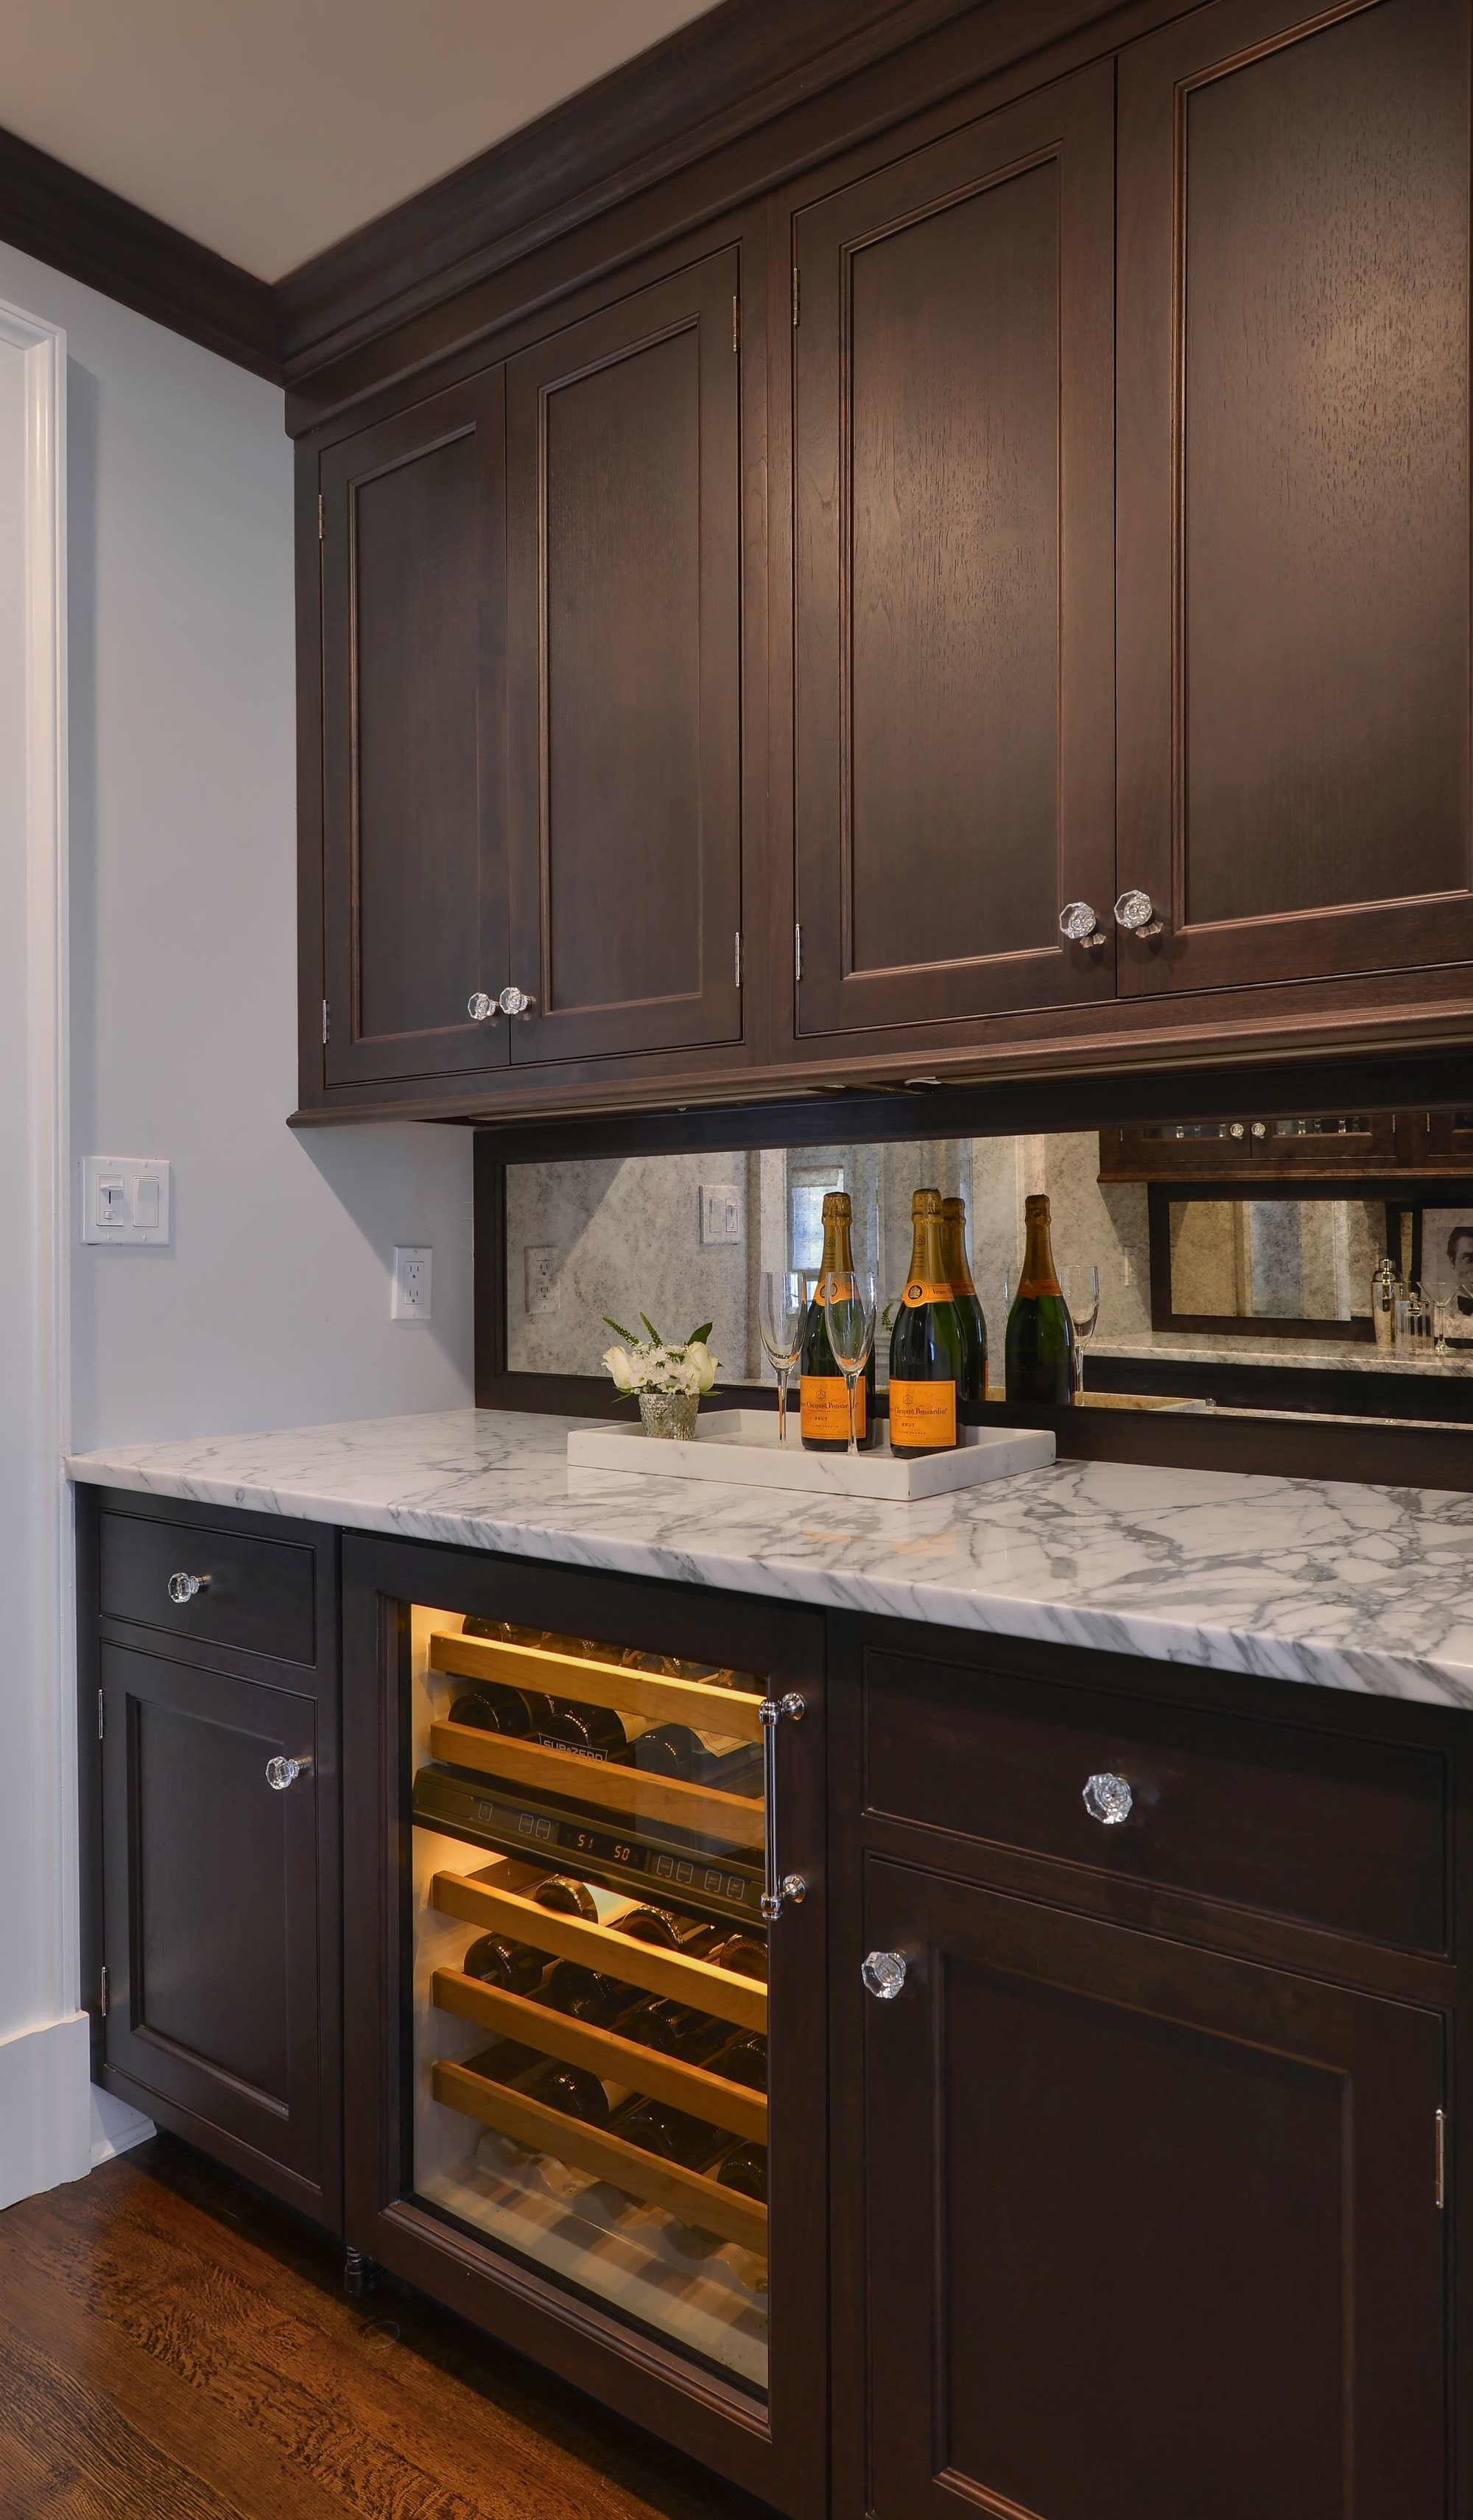 Transitional style kitchen with wine storage and cabinets